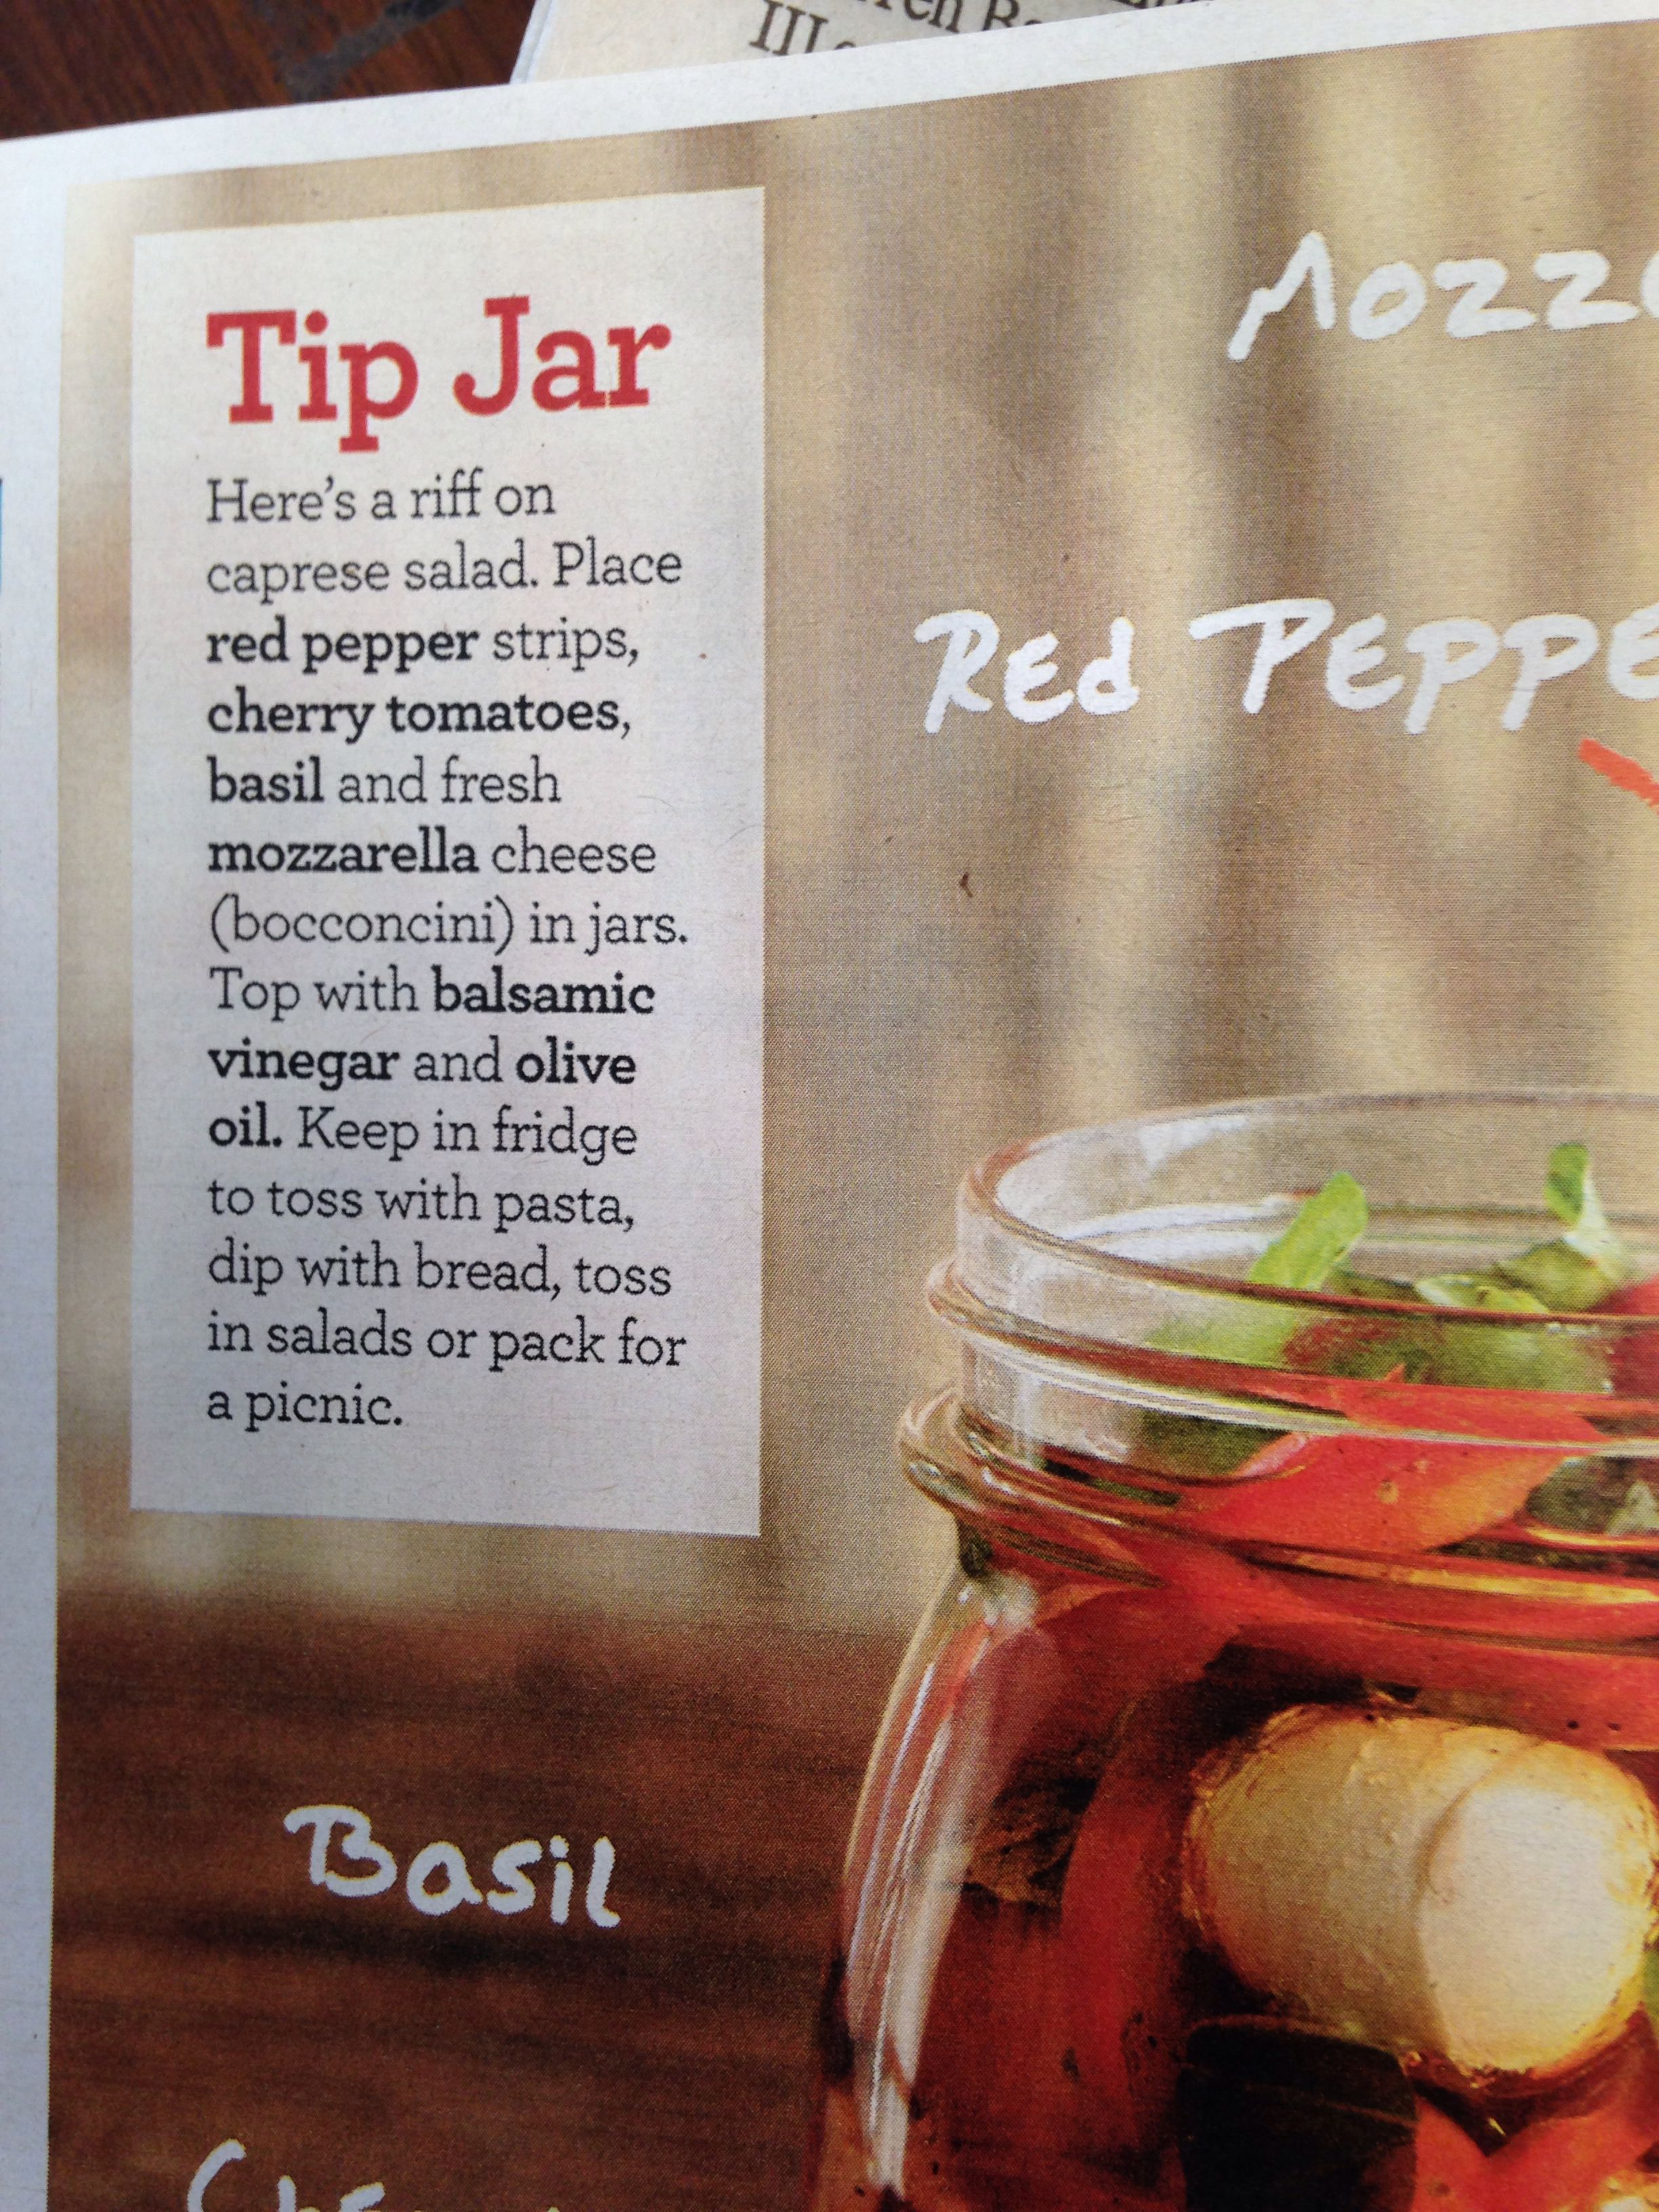 Red pepper strips, cherry tomatoes, basil, and fresh mozzarella cheese ( bocconcini) in jar with balsamic vinegar and olive oil. Refrigerate.